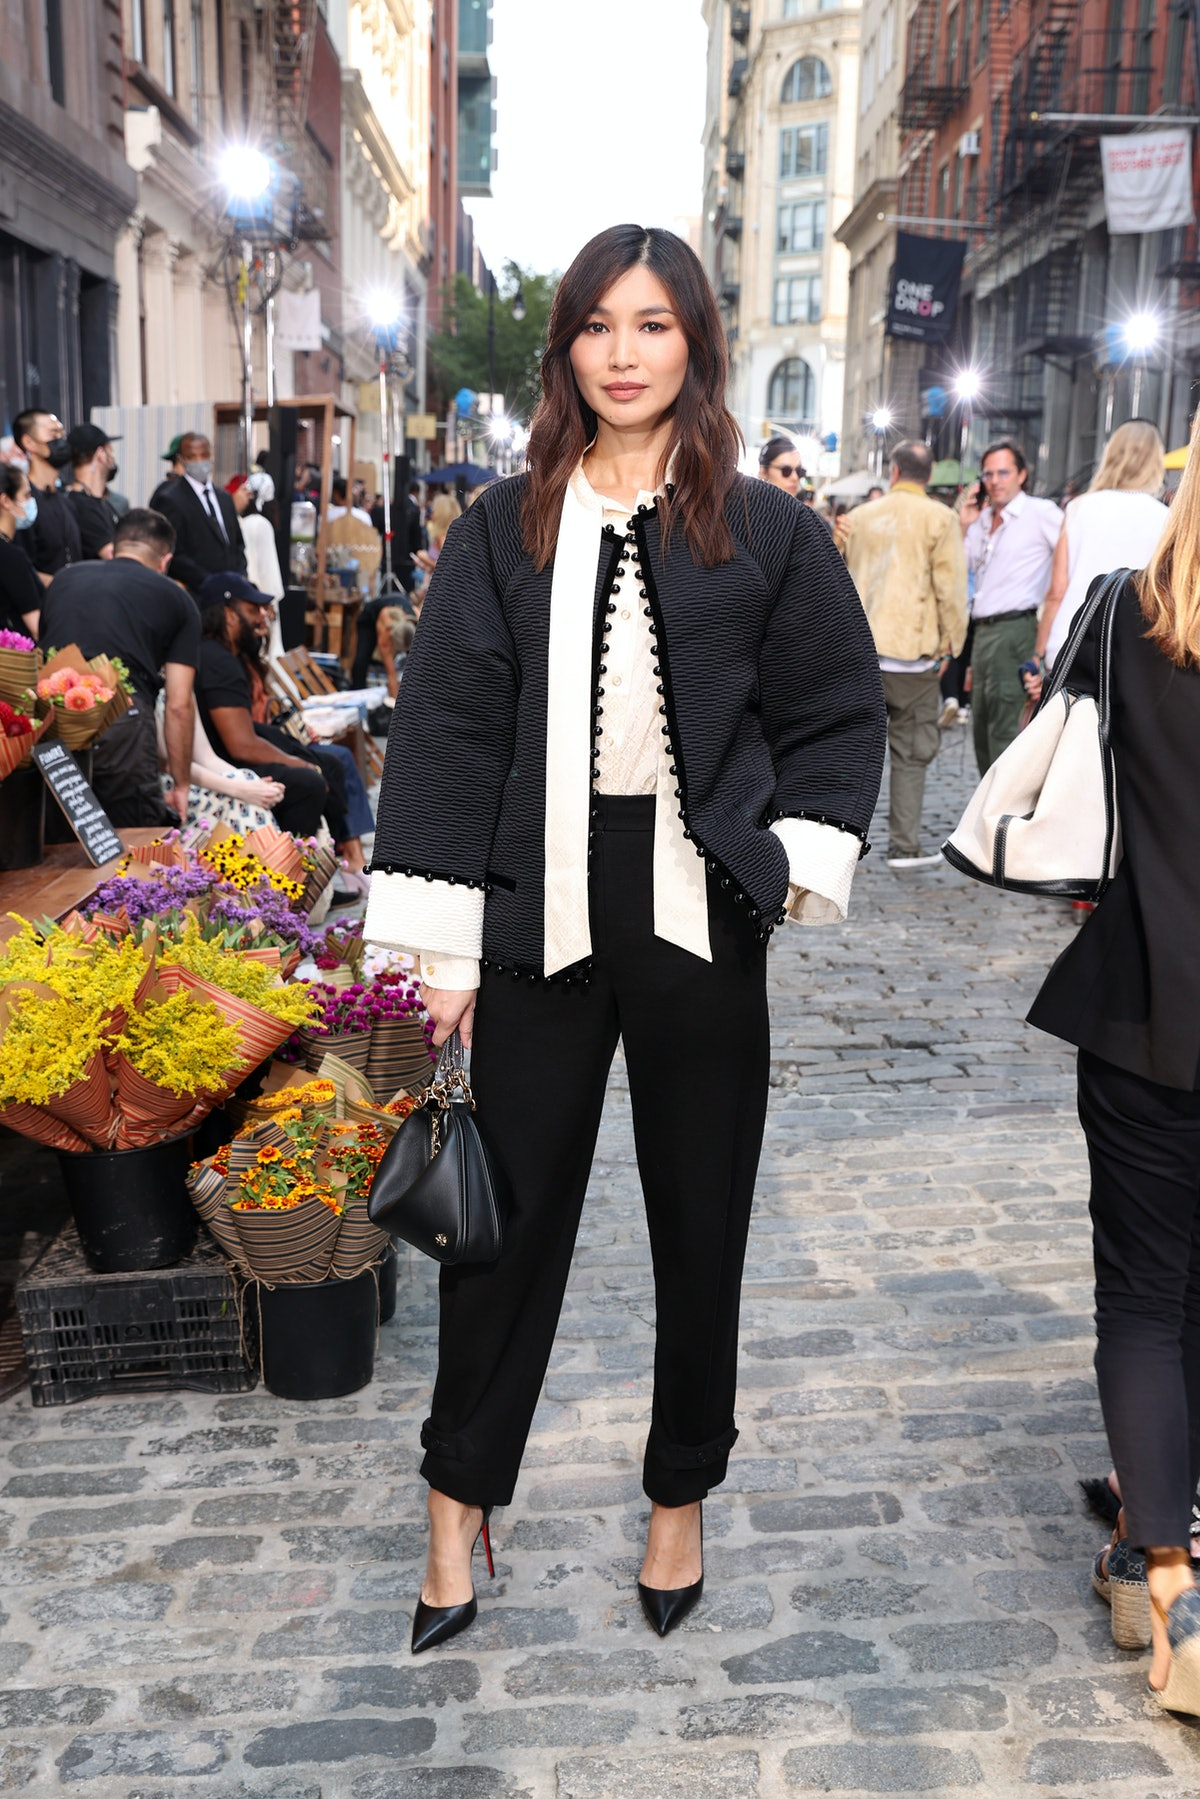 Gemma Chan attends the Tory Burch Spring/Summer 2022 Collection & Mercer Street Block Party on Septe...